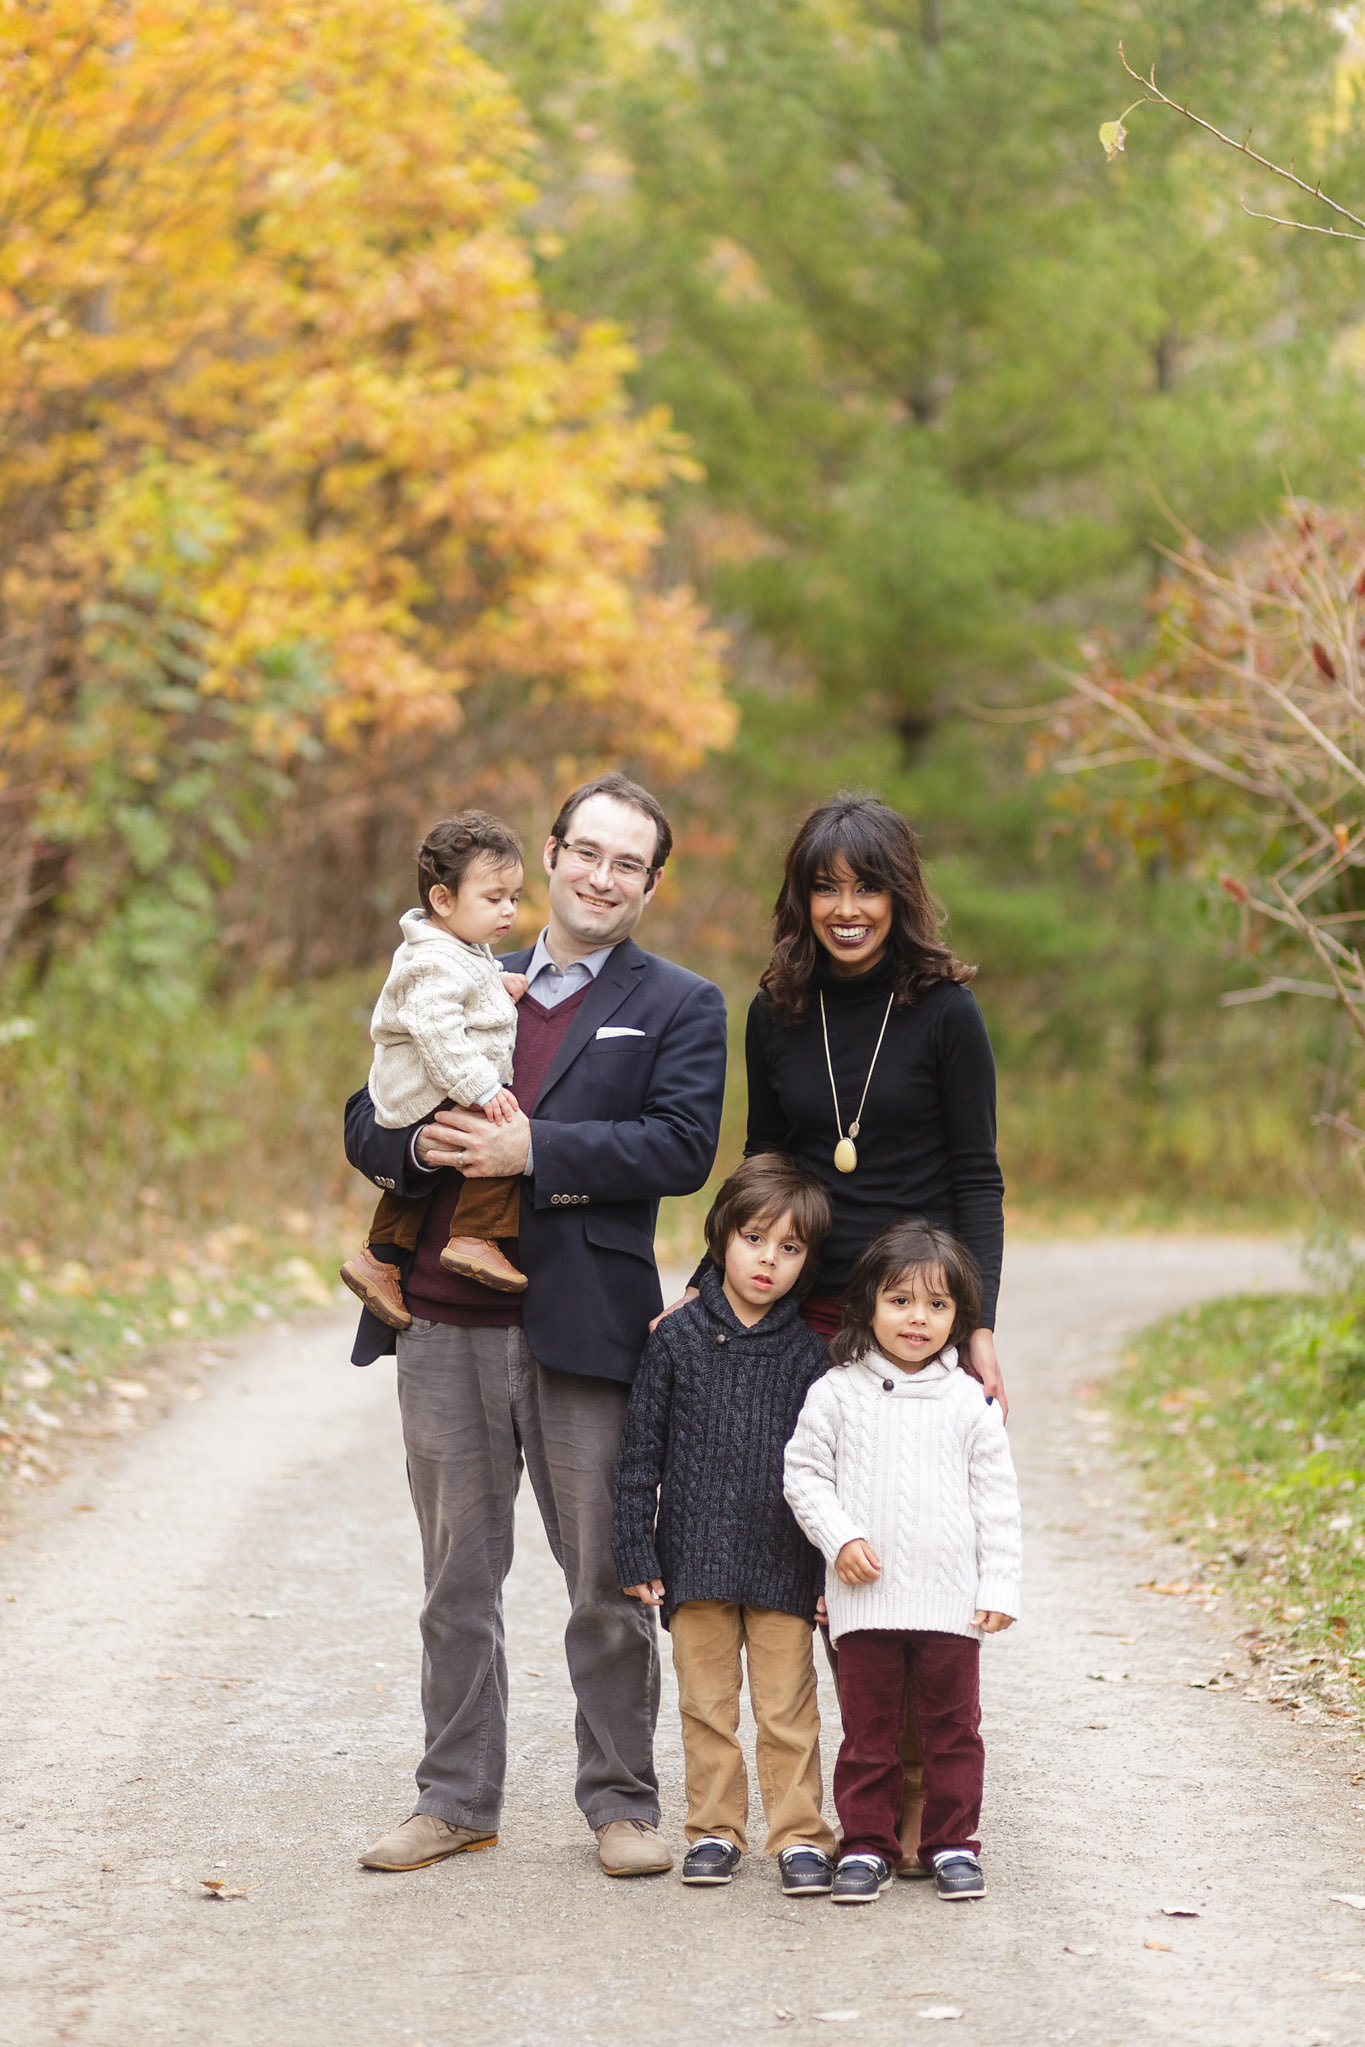 jessicahoang-apse-family-1